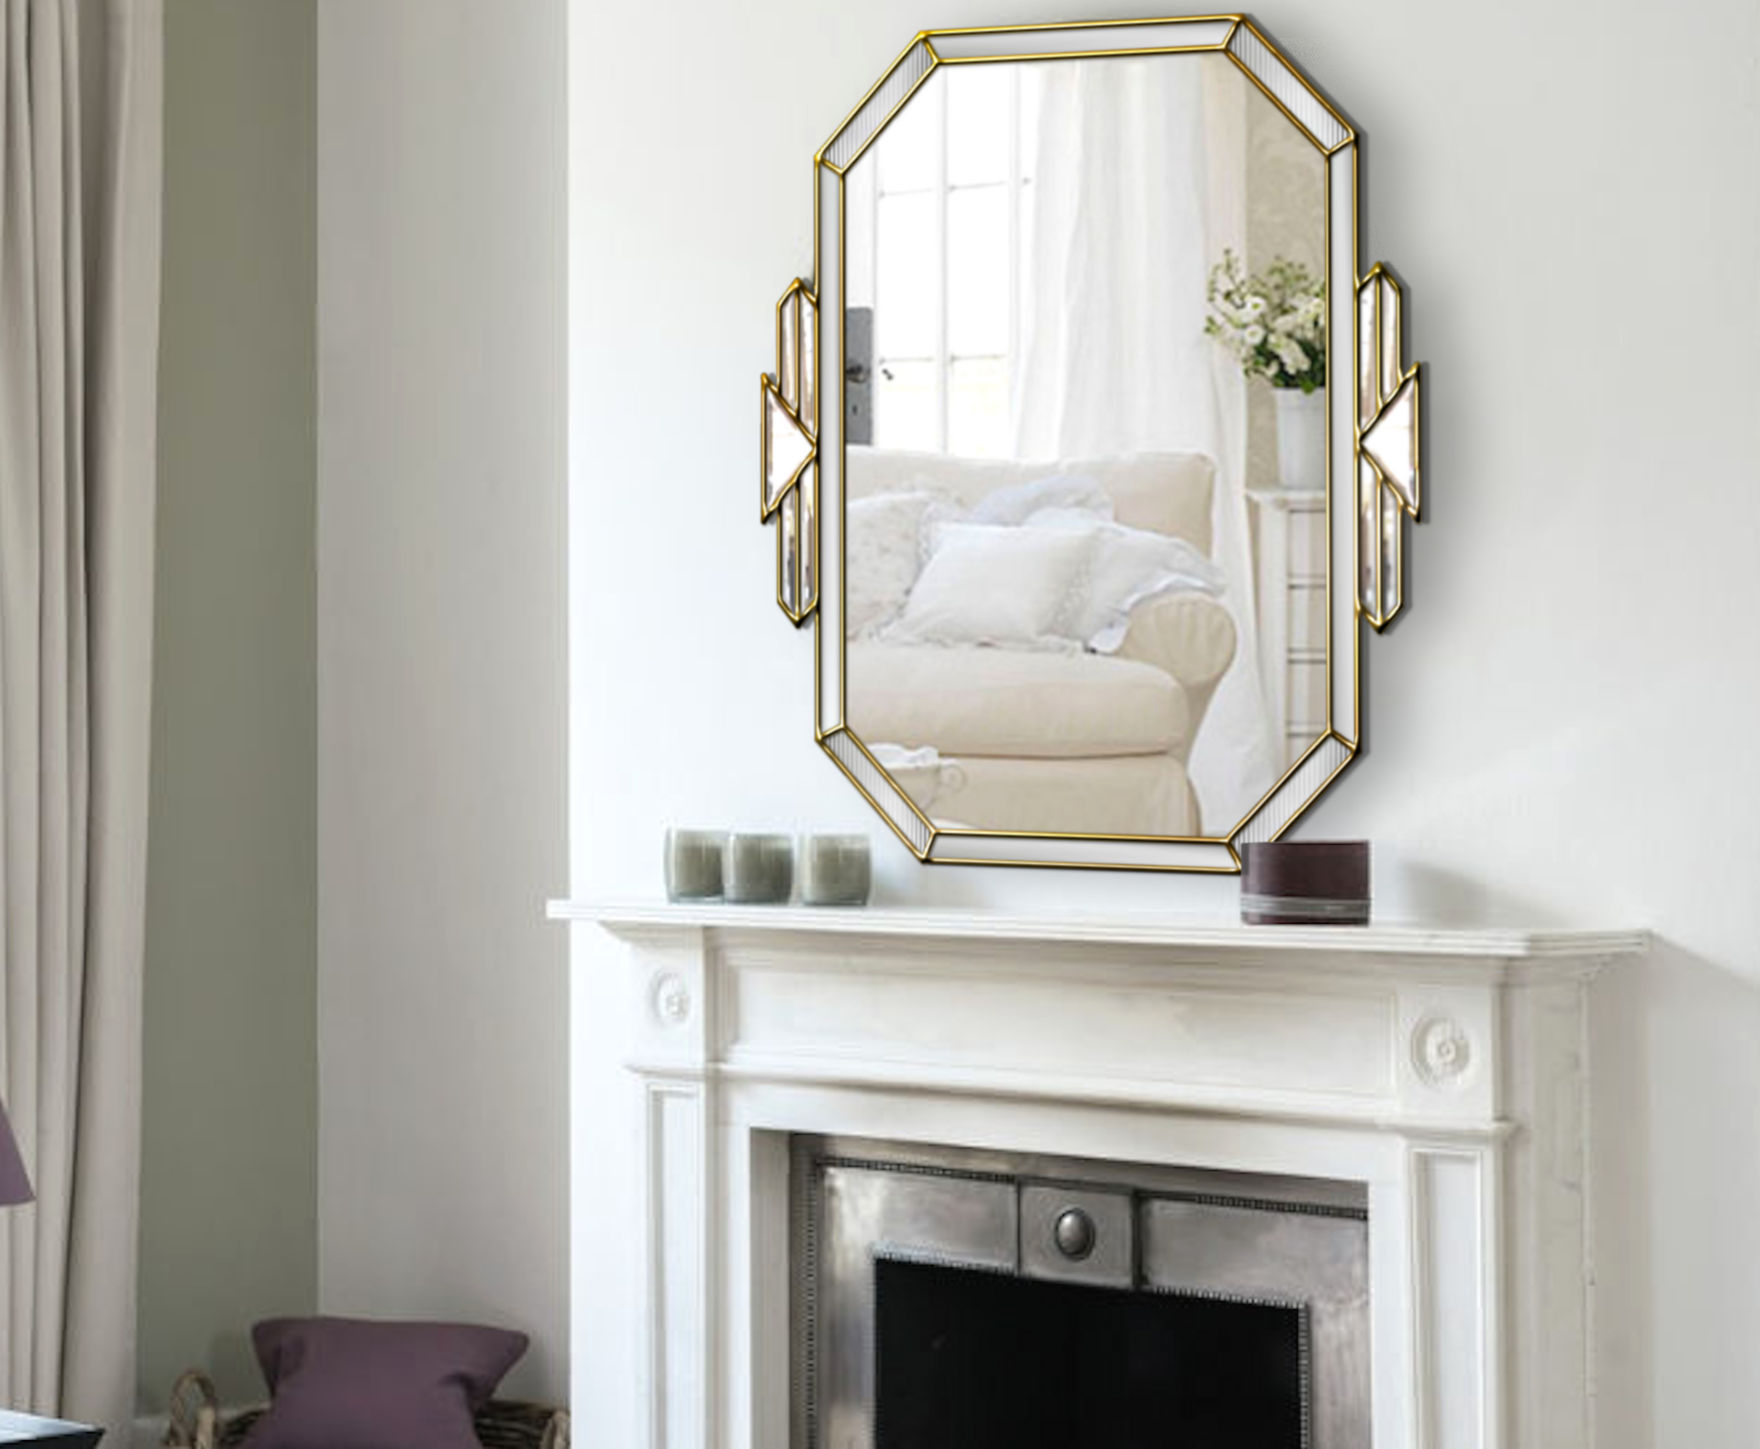 Tiffany Original Handcrafted Art Deco Over Mantle Wall Mirror With Gold Trim Bespoke Mirrors Art Deco Mirrors Custom Made Mirrors